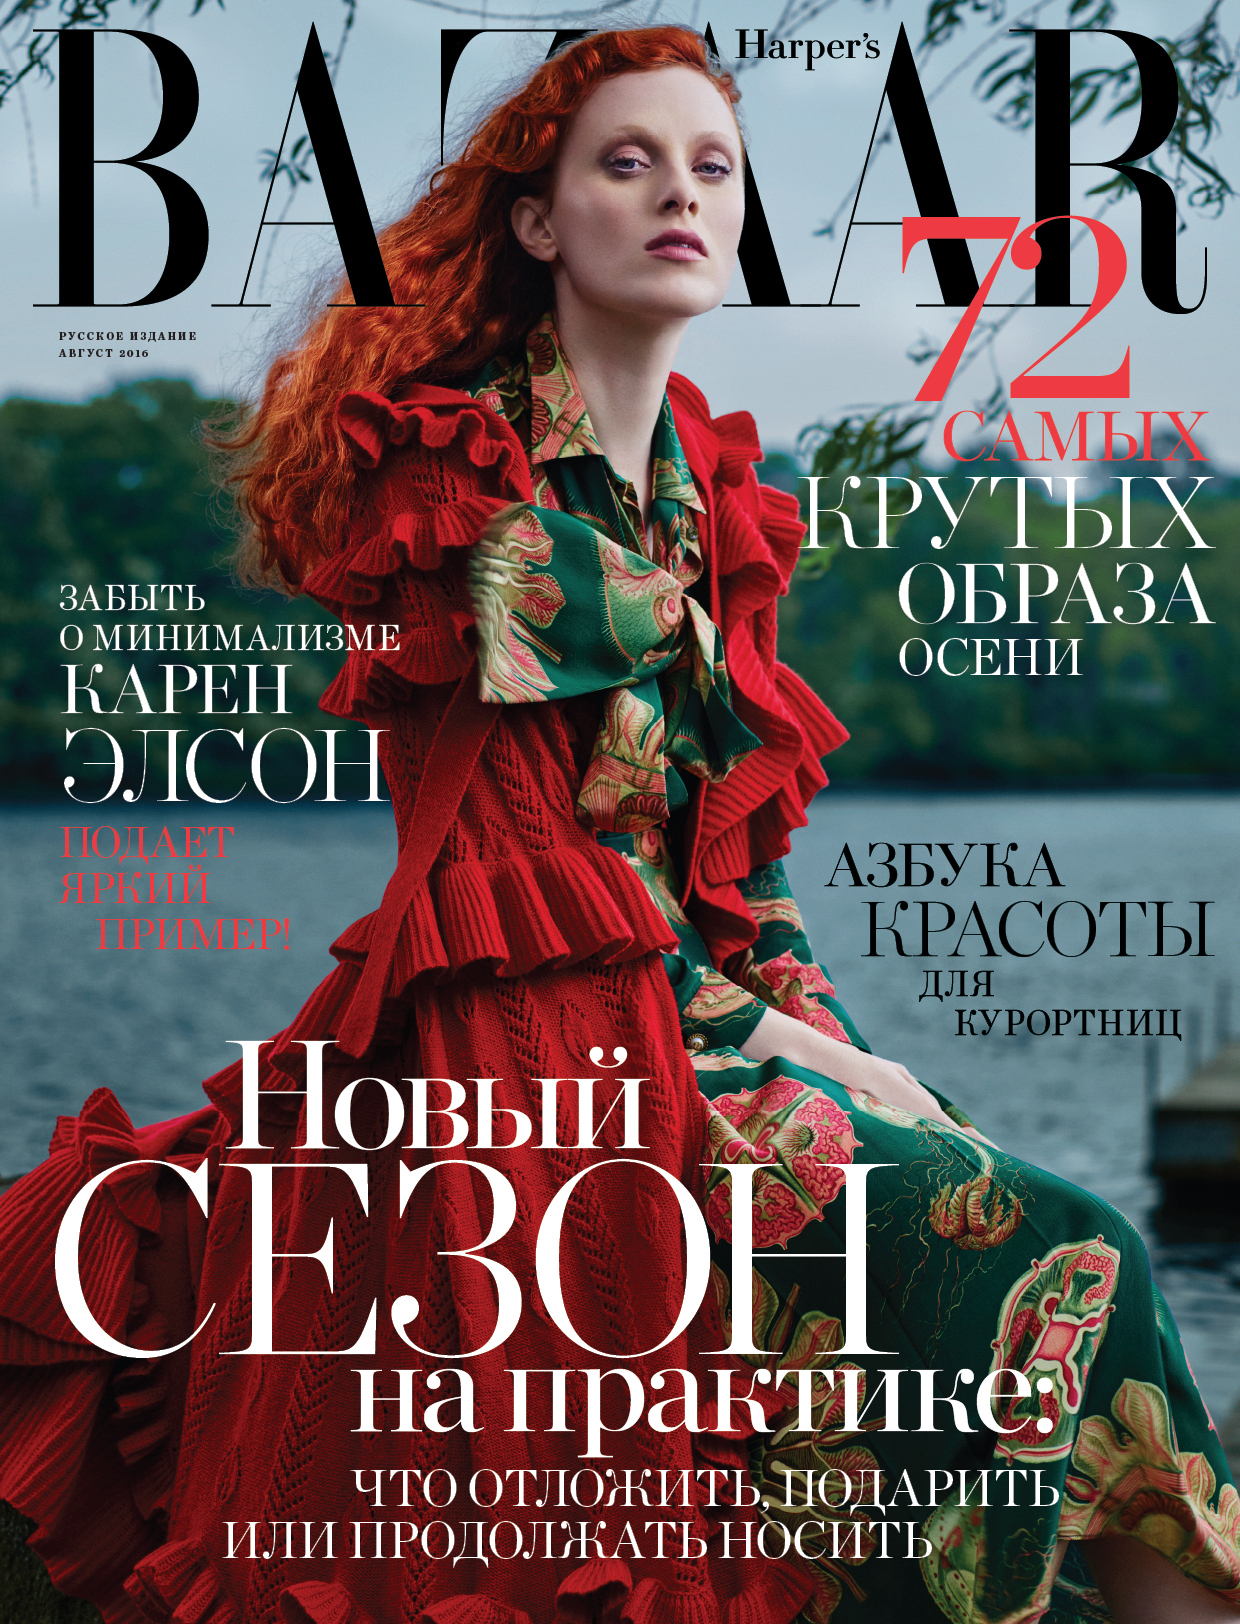 Editorial / Harper's Bazaar: Rachel Smith